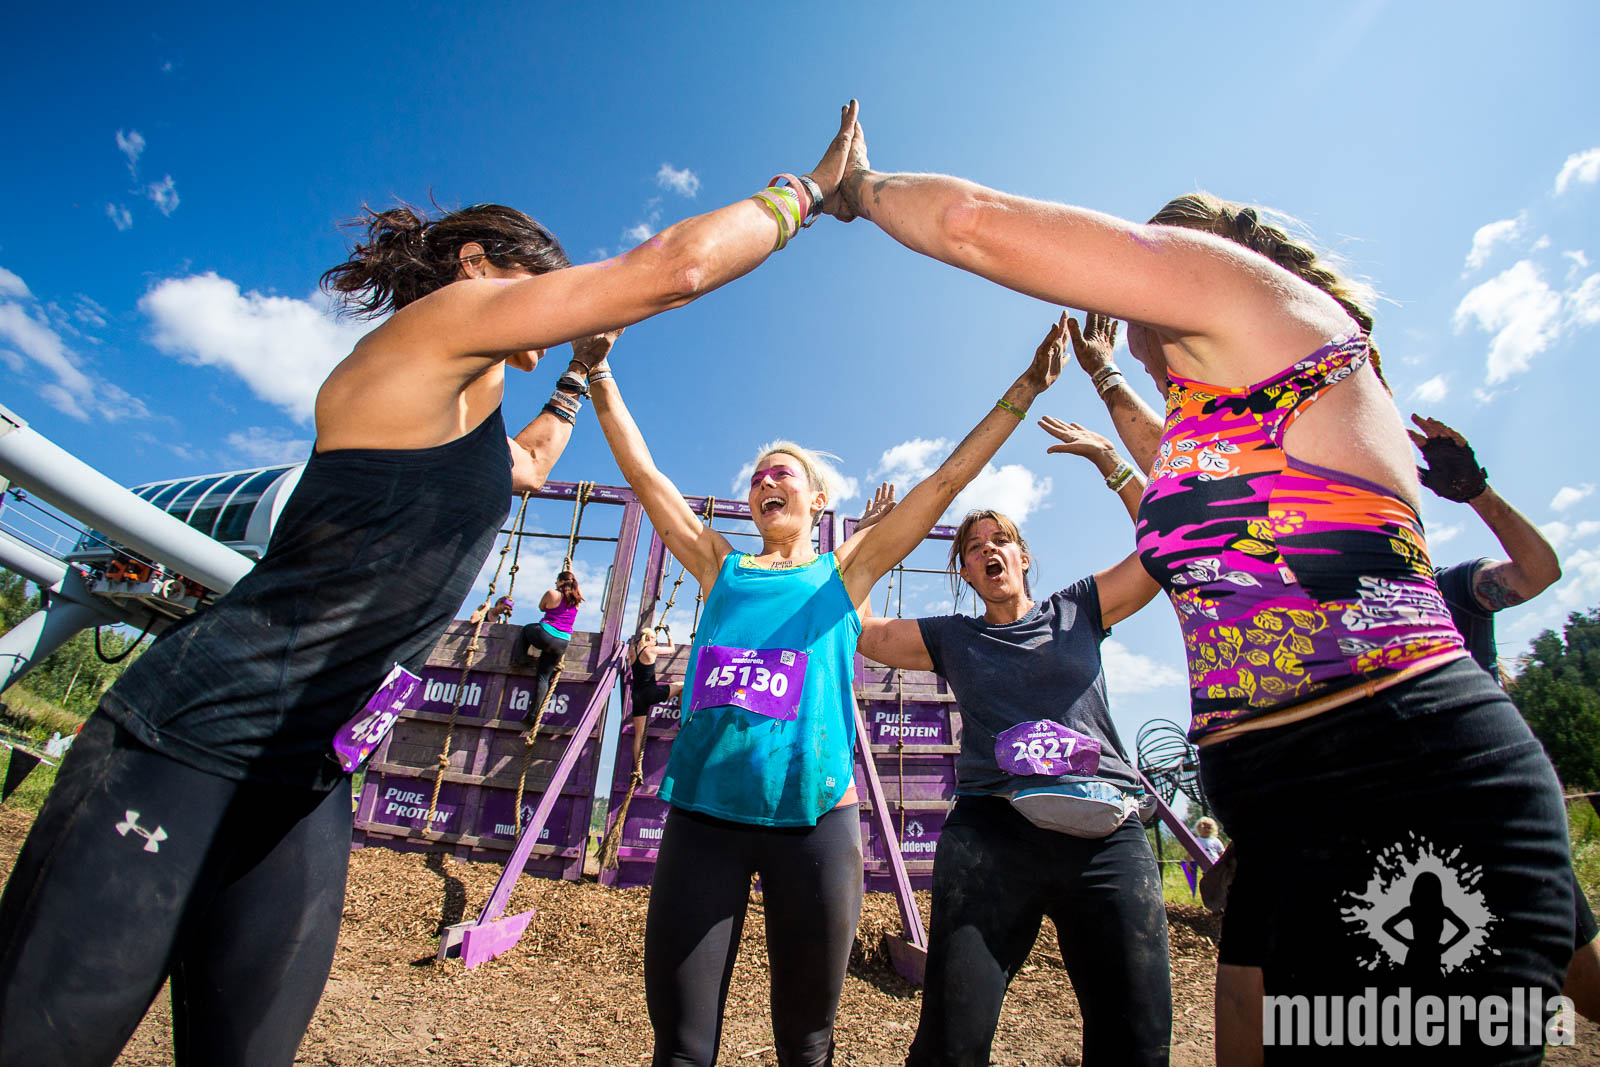 Mudderella Own Your Strong